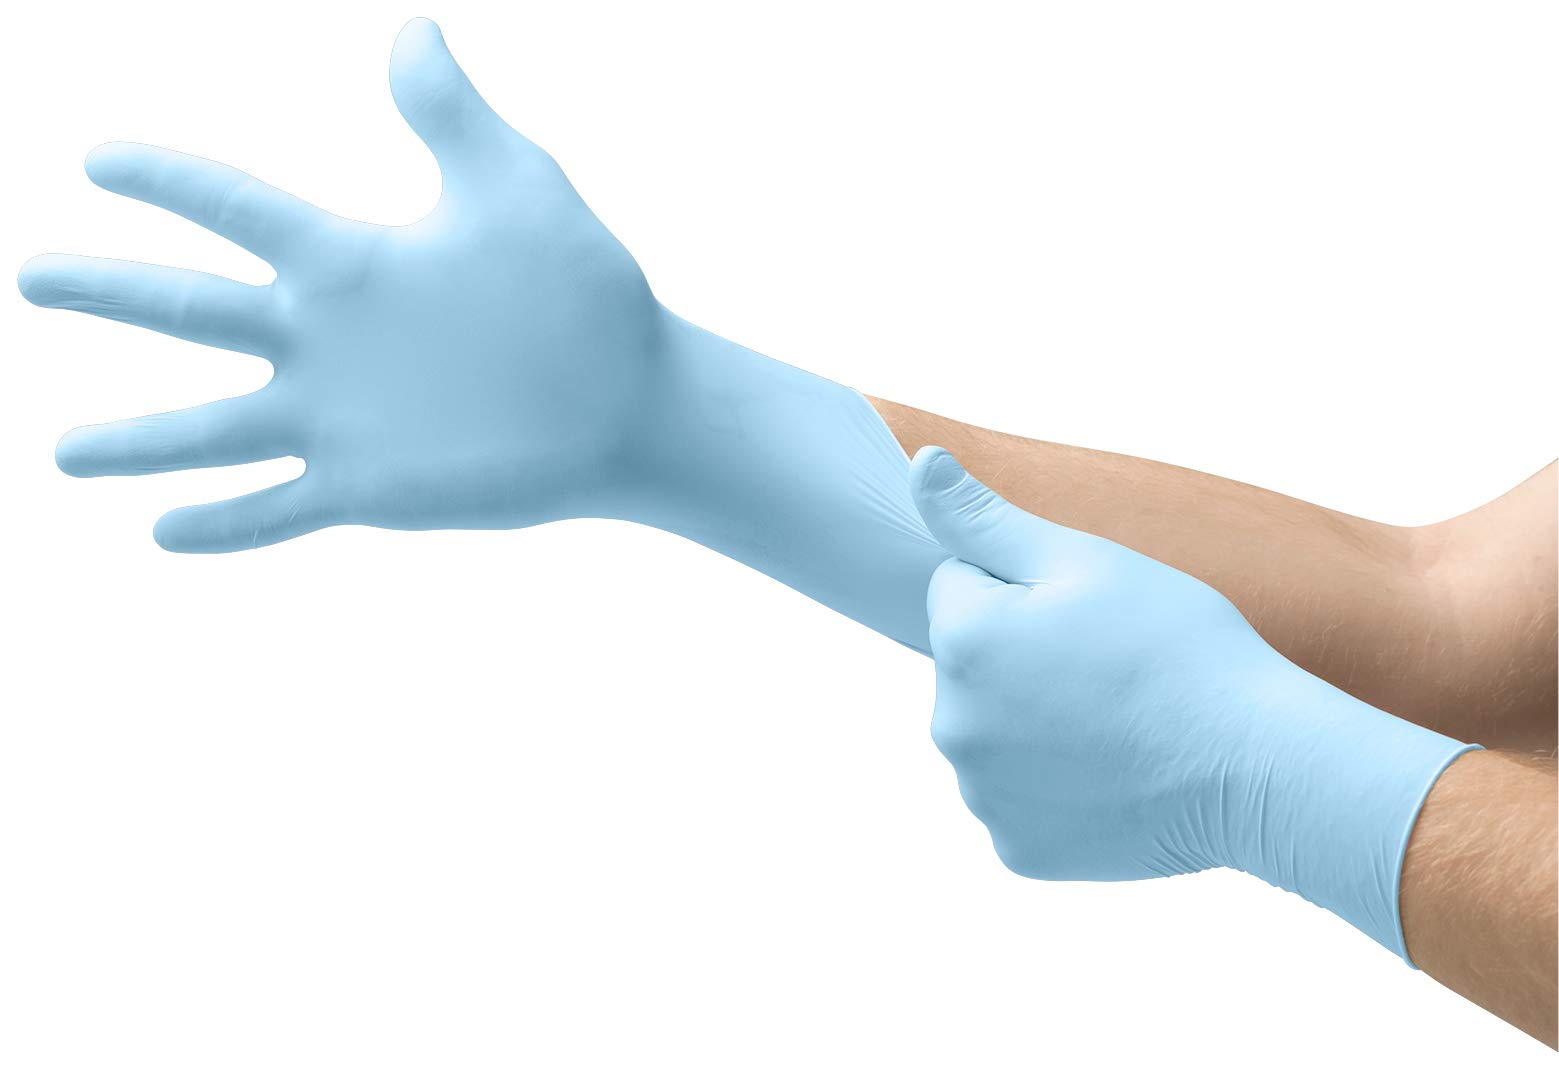 MICRO-TOUCH DENTA-GLOVE Blue Nitrile Gloves - Disposable, Powder Free, Exam Grade, Size XSmall (pack of 100)